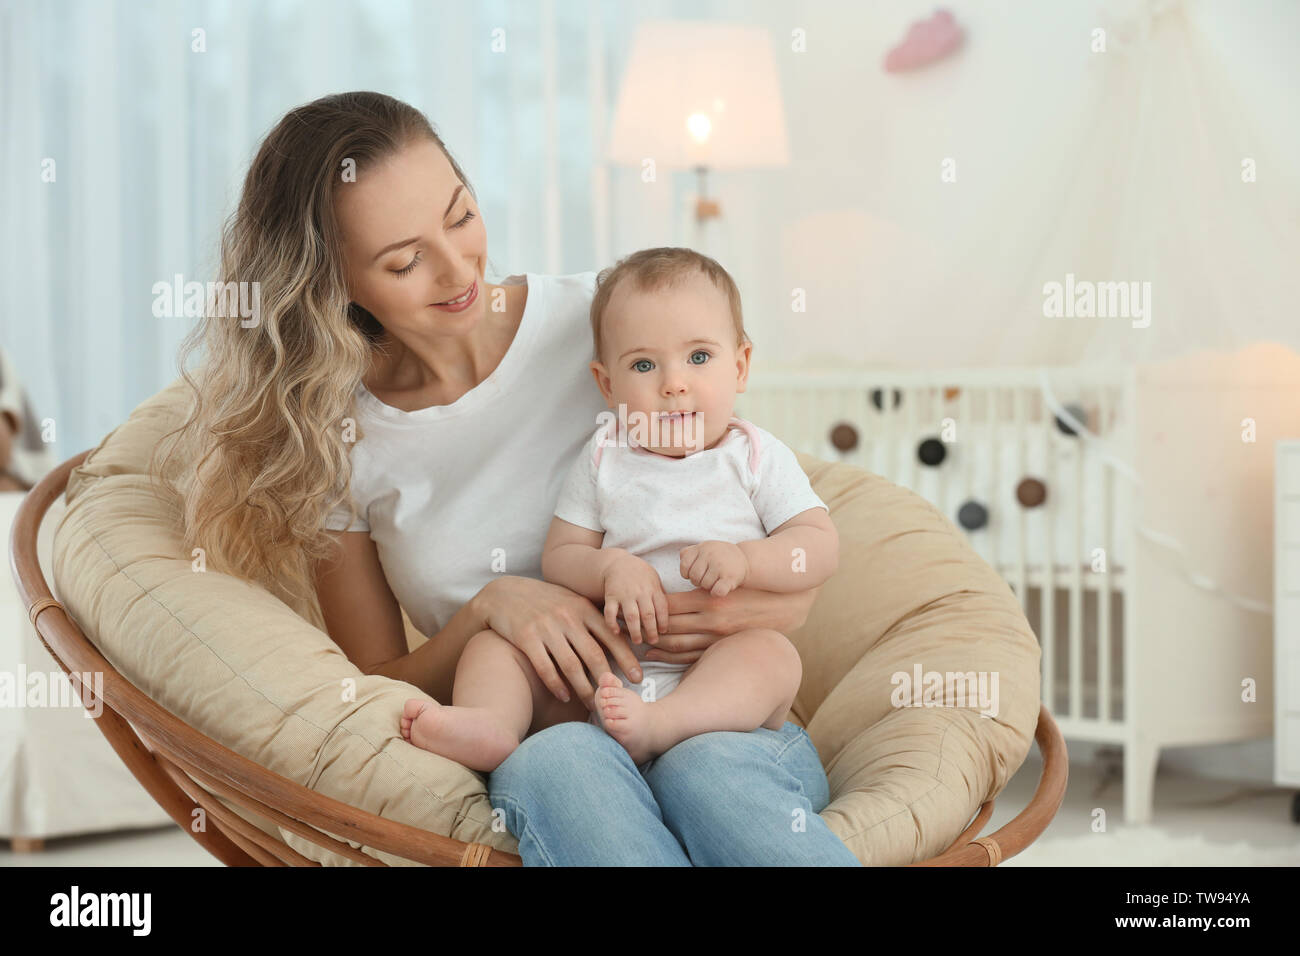 Young Mother With Her Cute Little Baby In Lounge Chair At Home Stock Photo Alamy